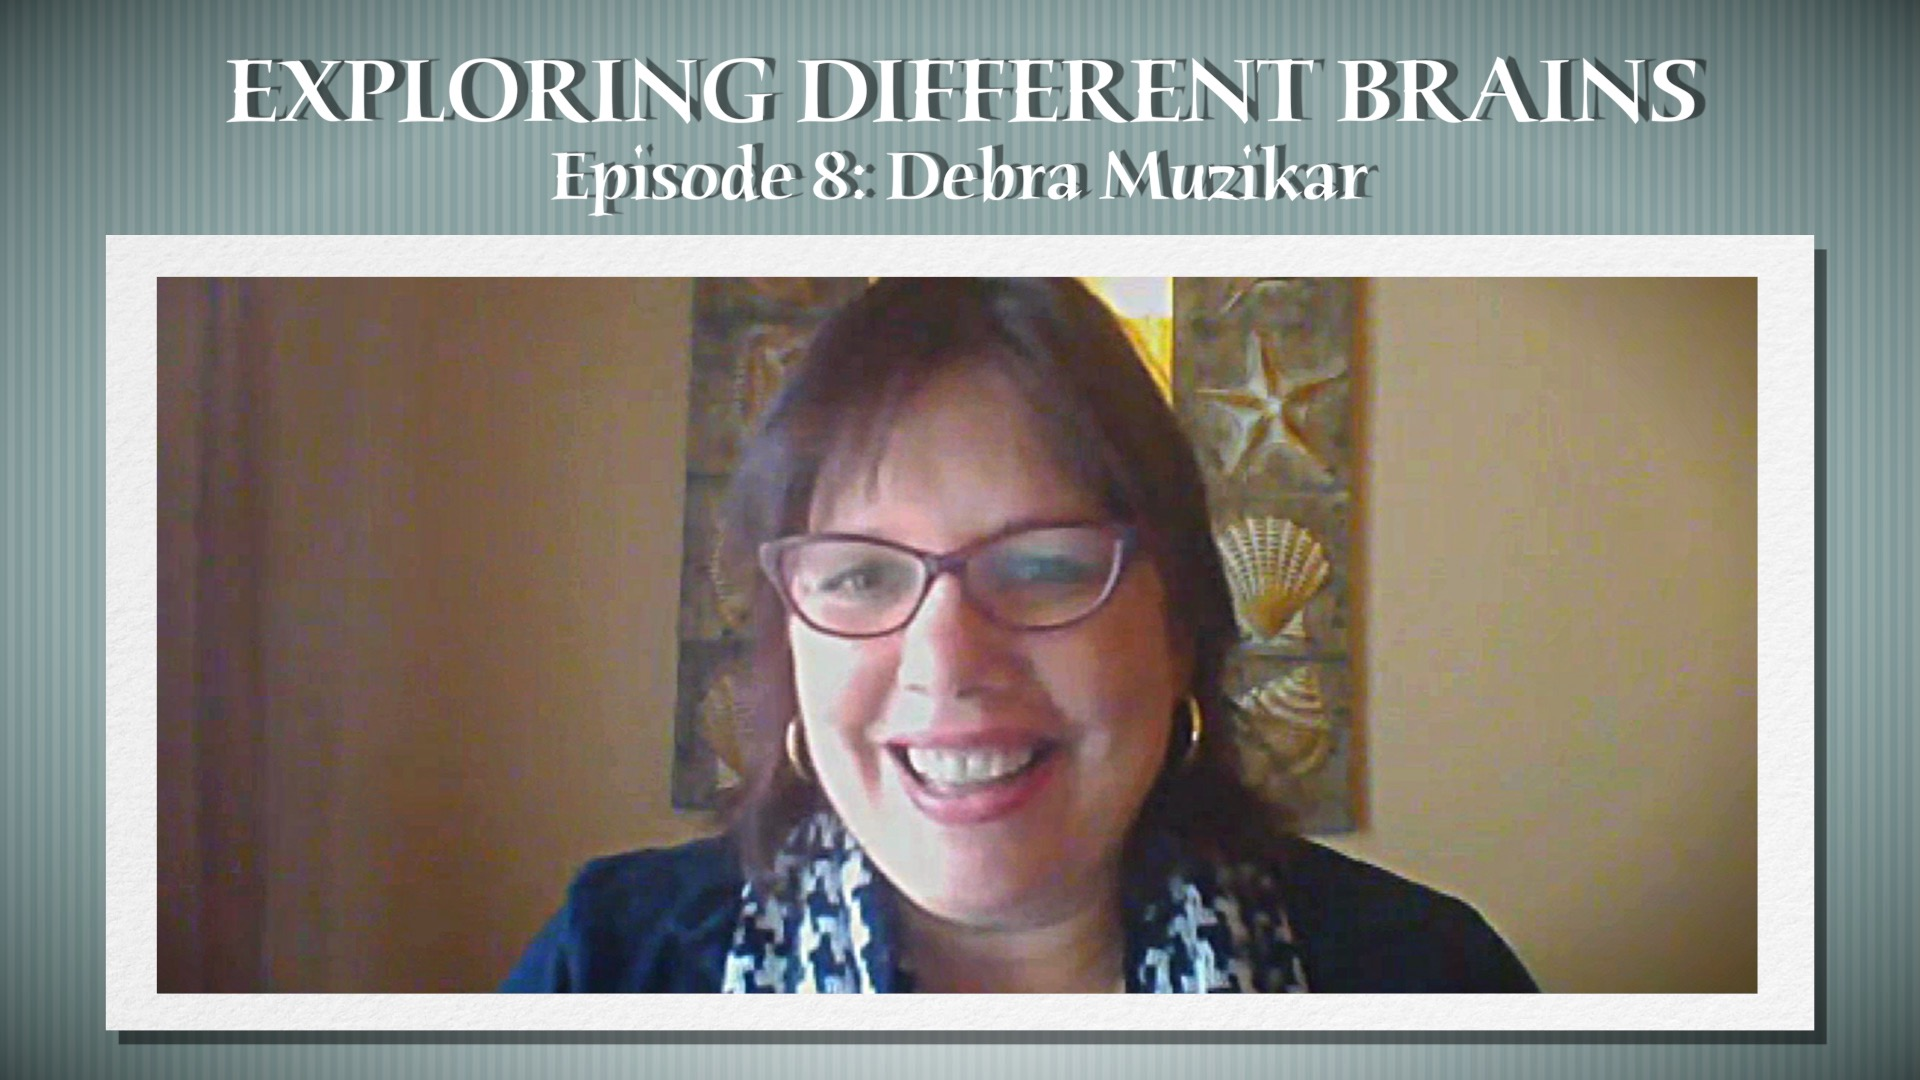 The Art Of Autism With Debra Muzikar |EXPLORING DIFFERENT BRAINS – Episode 8